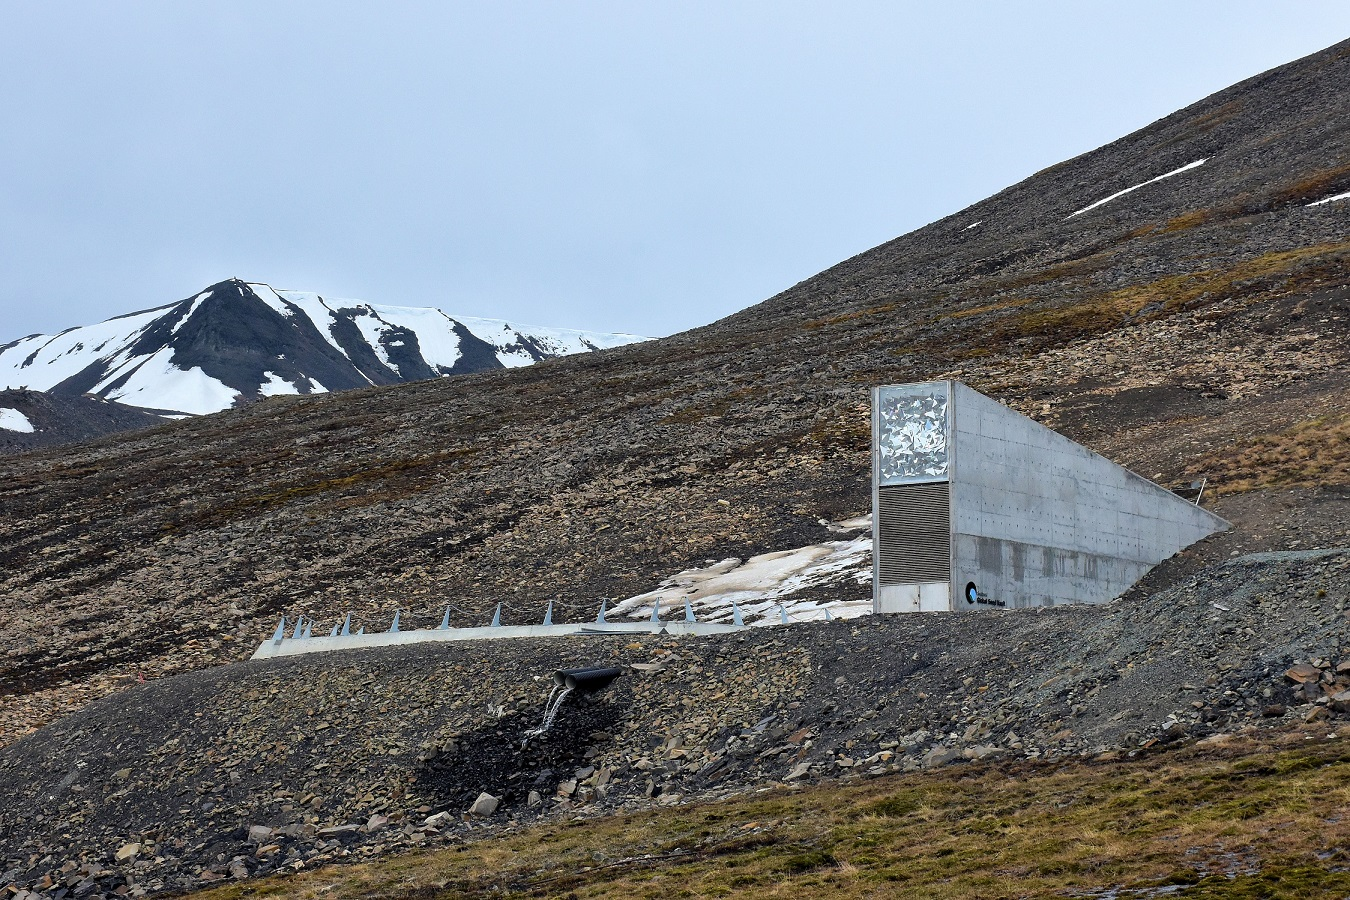 Like a modern entrance to a mysterious mountain cave, the access to the Global Seed Vault, which contains the world's emergency seed supply for agricultural crops, stands forlorn half way up an isolated mountainside on the island of Spitsbergen in Norway's high arctic. Above the entrance the architect installed a piece of artwork consisting of triangular pieces of metal at different angles. The art catches the natural light and allows the vault to be seen from a great distance.